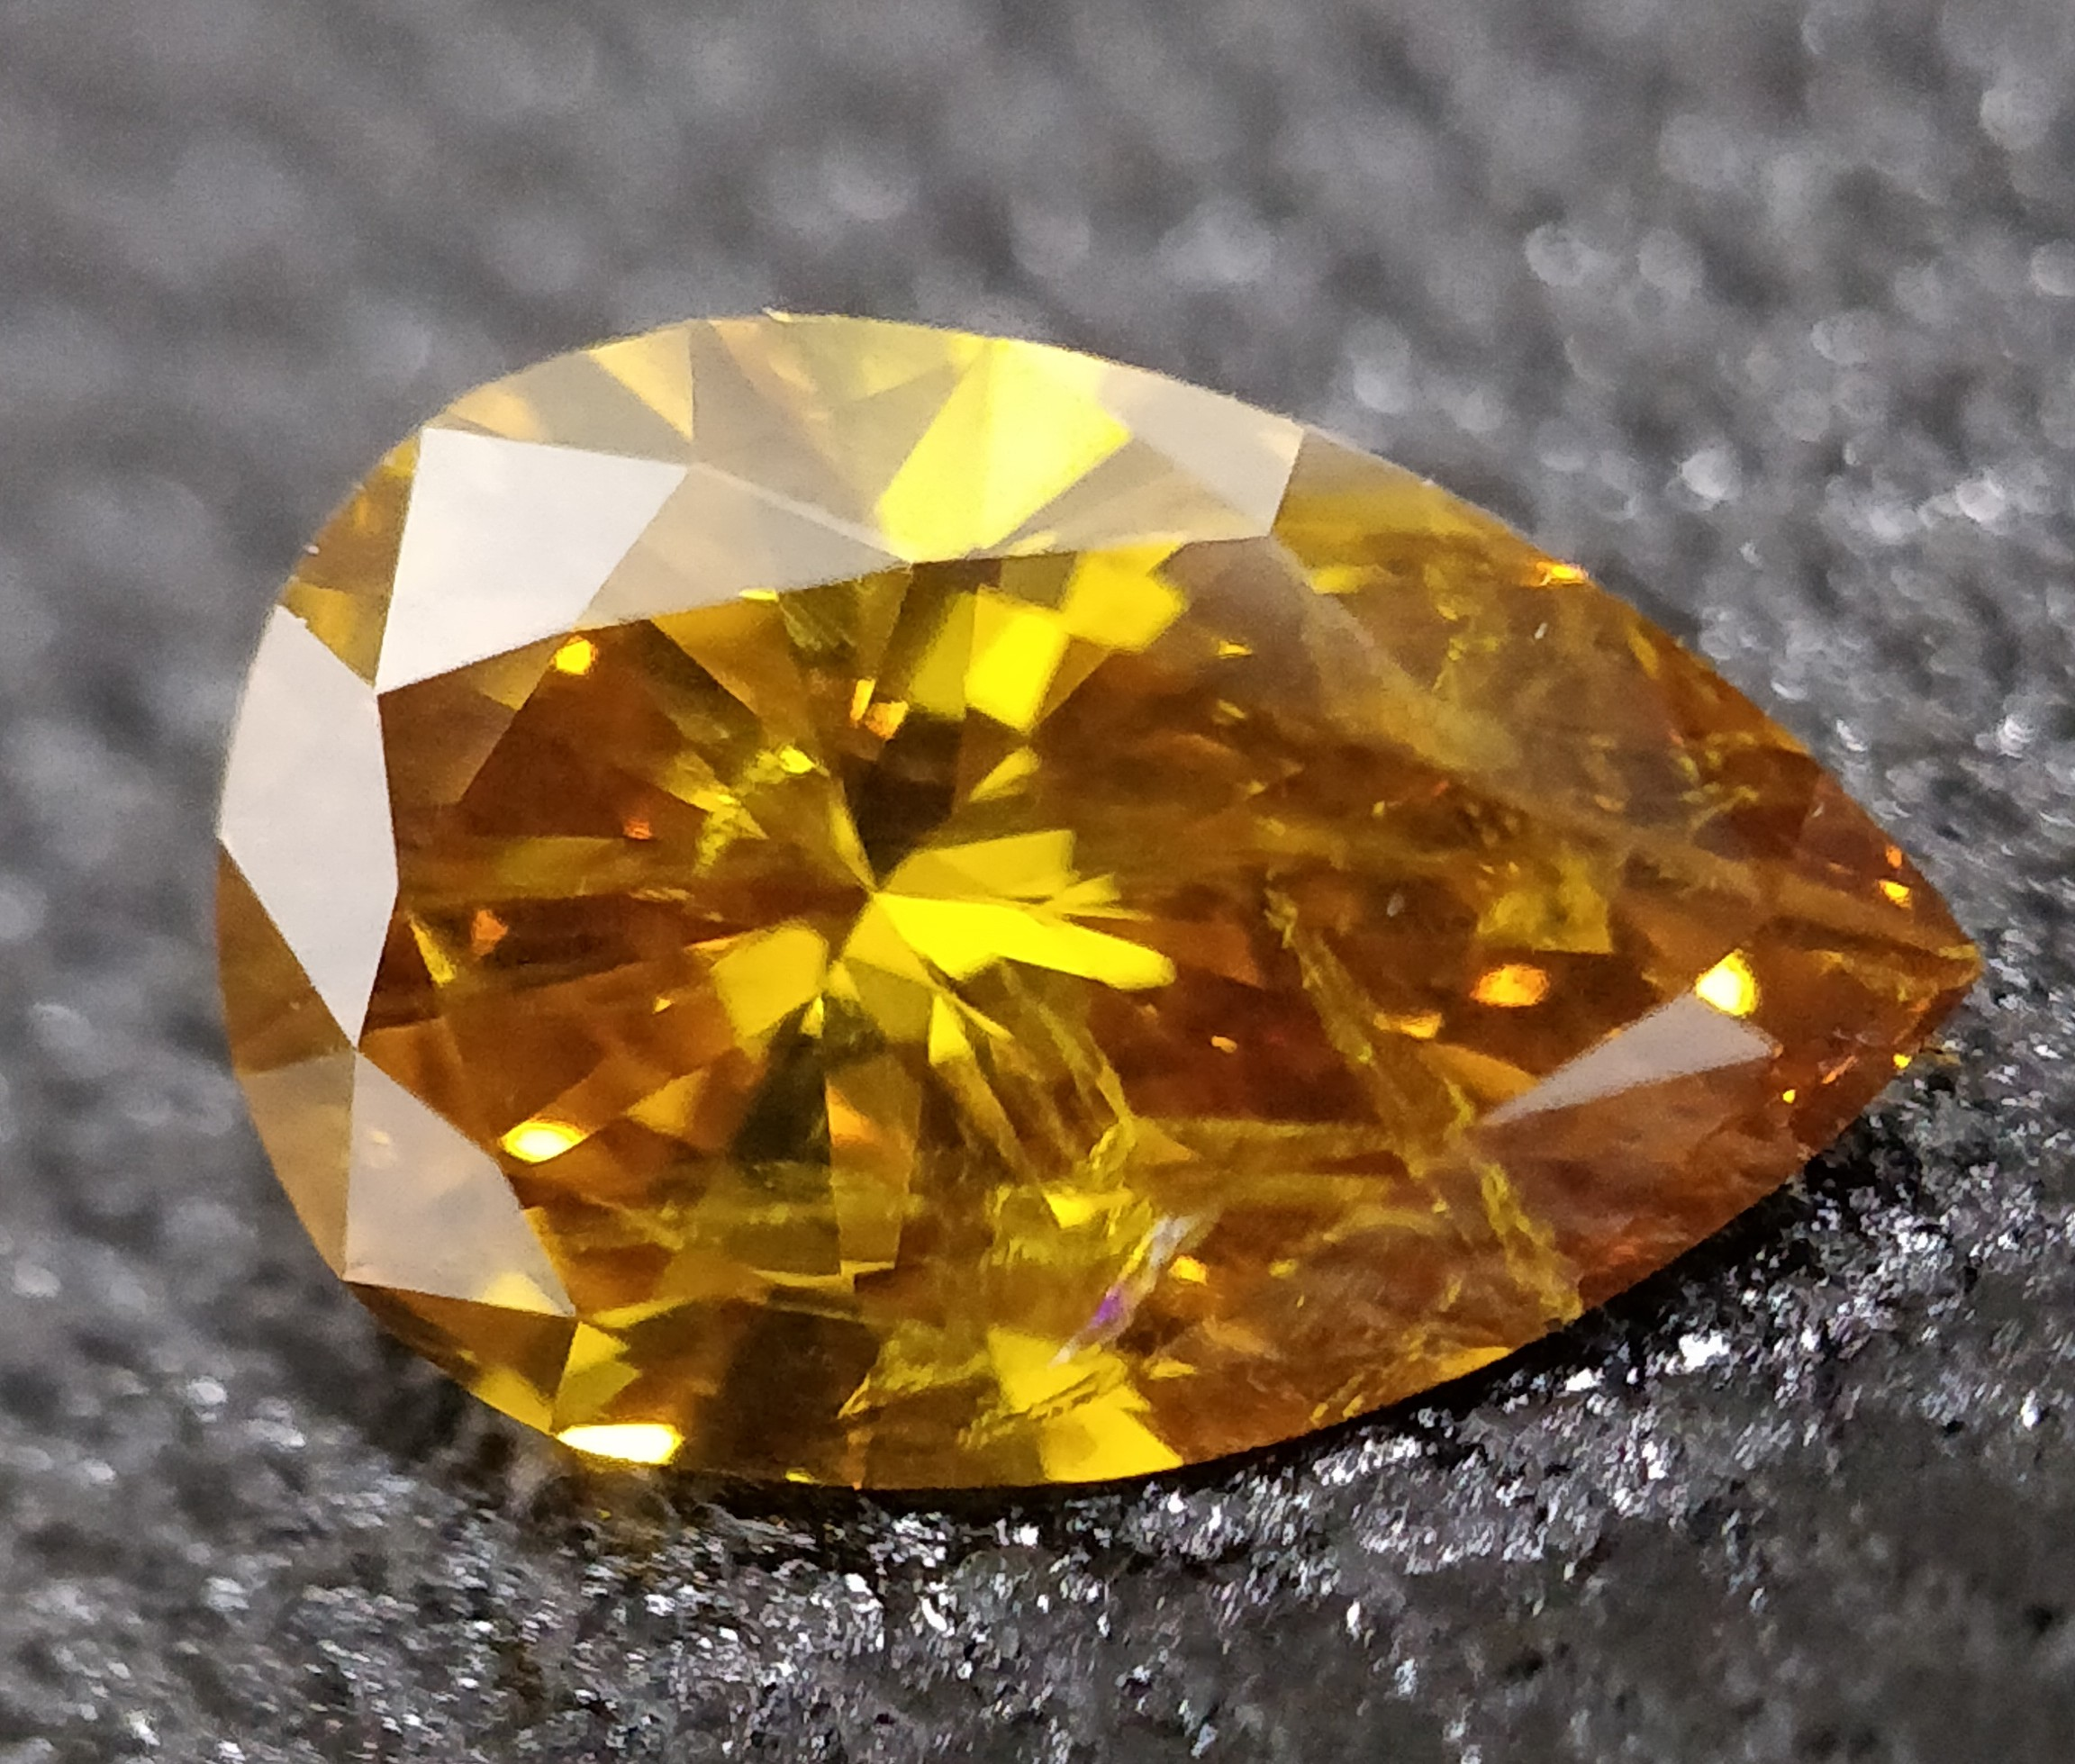 Pear Cut 0.810 Carat Brown Color I1 Clarity Sku 550563788